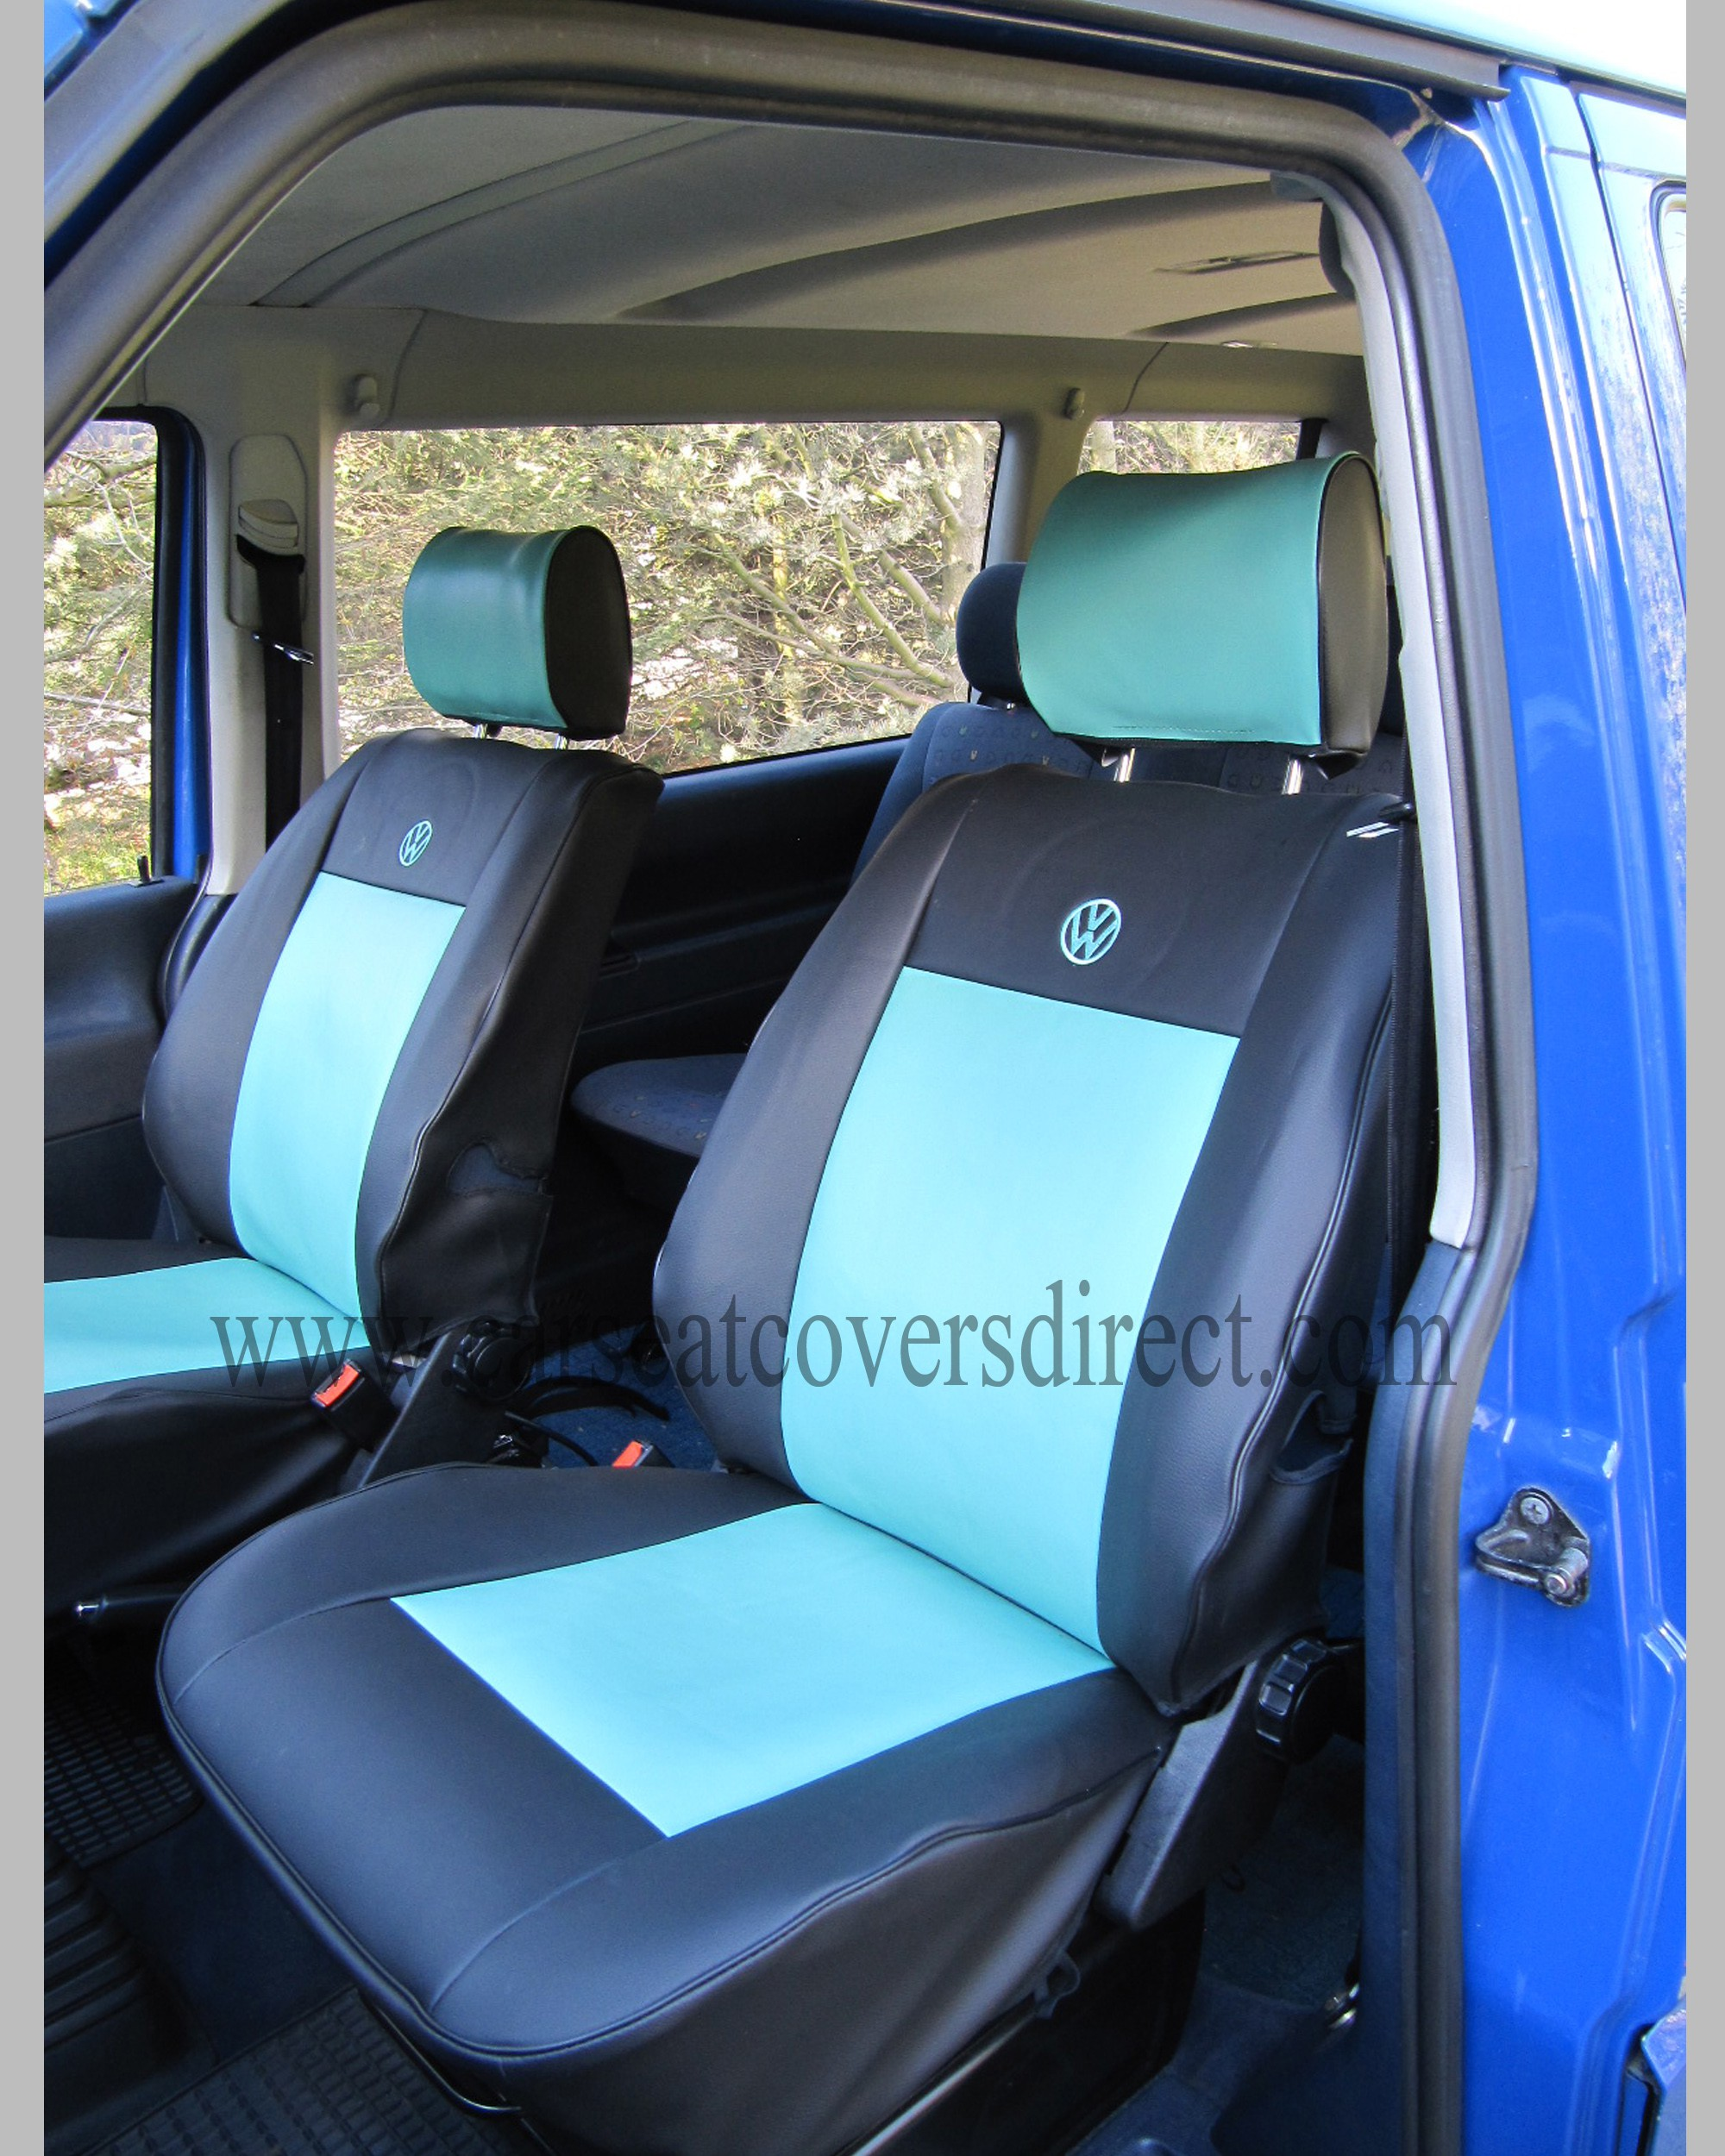 Vw T4 Seat Covers Blue Amp Black Car Seat Covers Direct